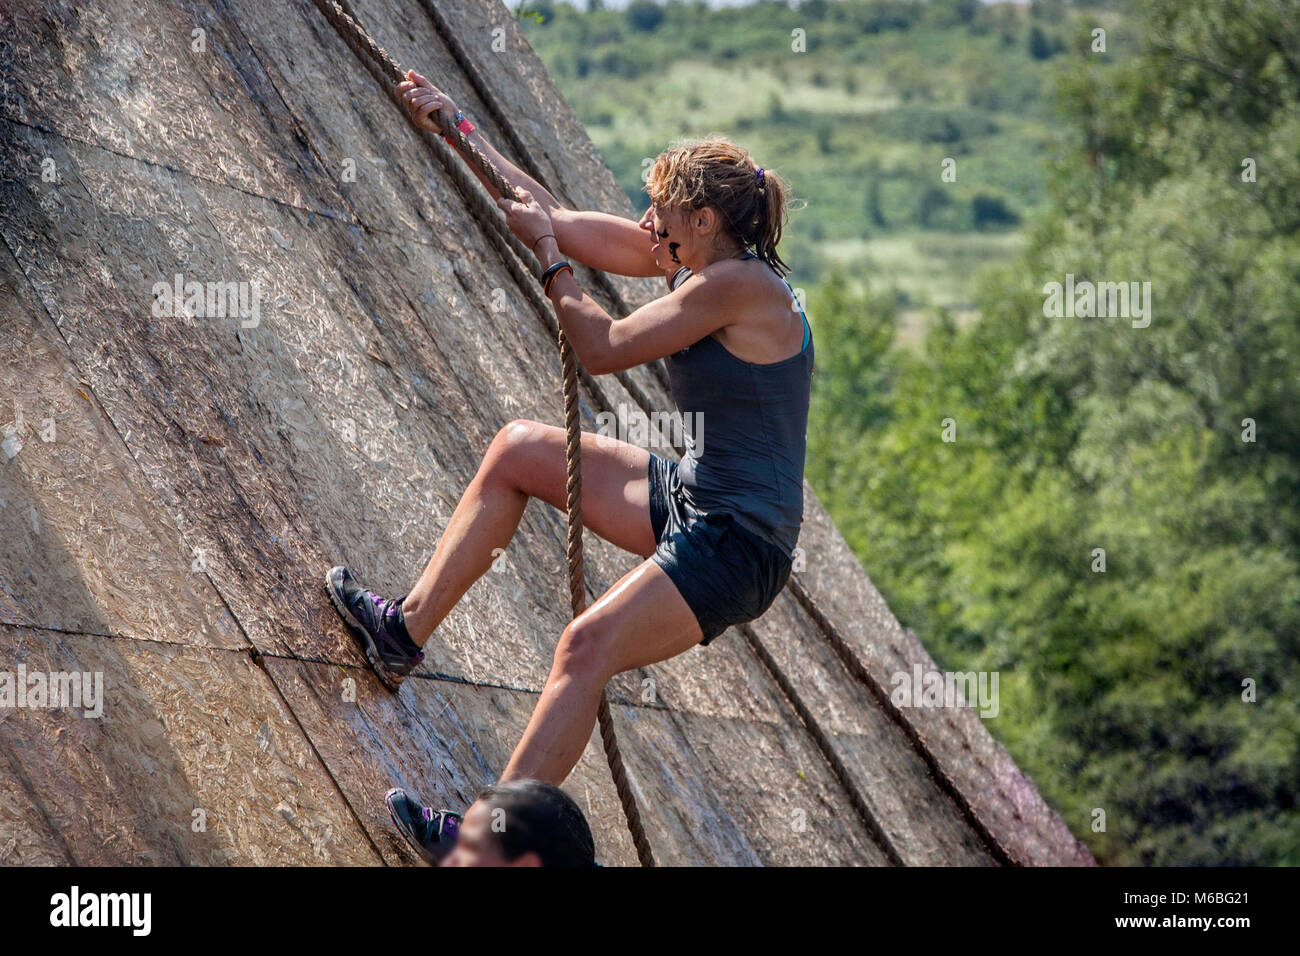 Young woman climbing a rope in extreme sport challenge; physical strength race; concept of courage, determination - Stock Image